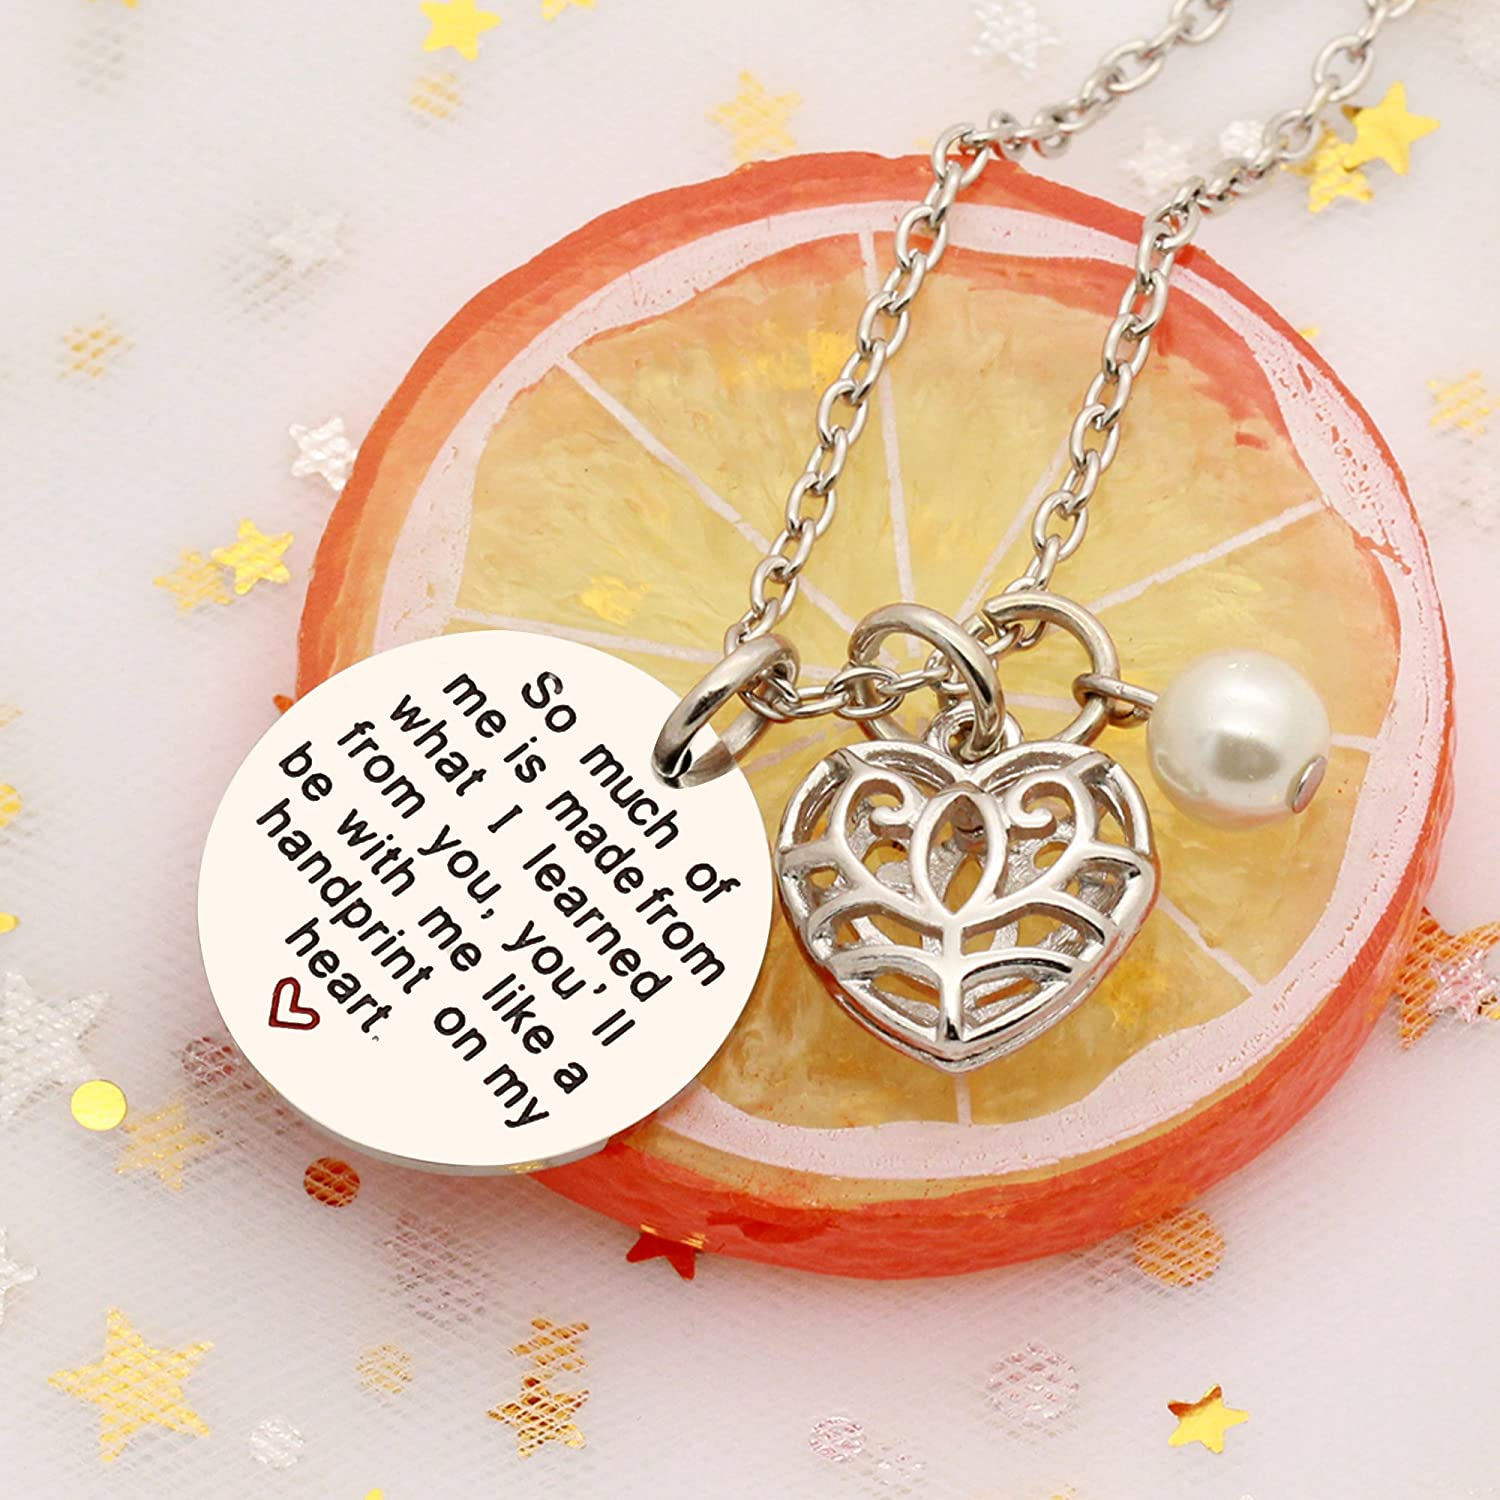 Pendant Necklace Graduation Gifts for Teacher Heart Pearl So Much of Me Learned from You